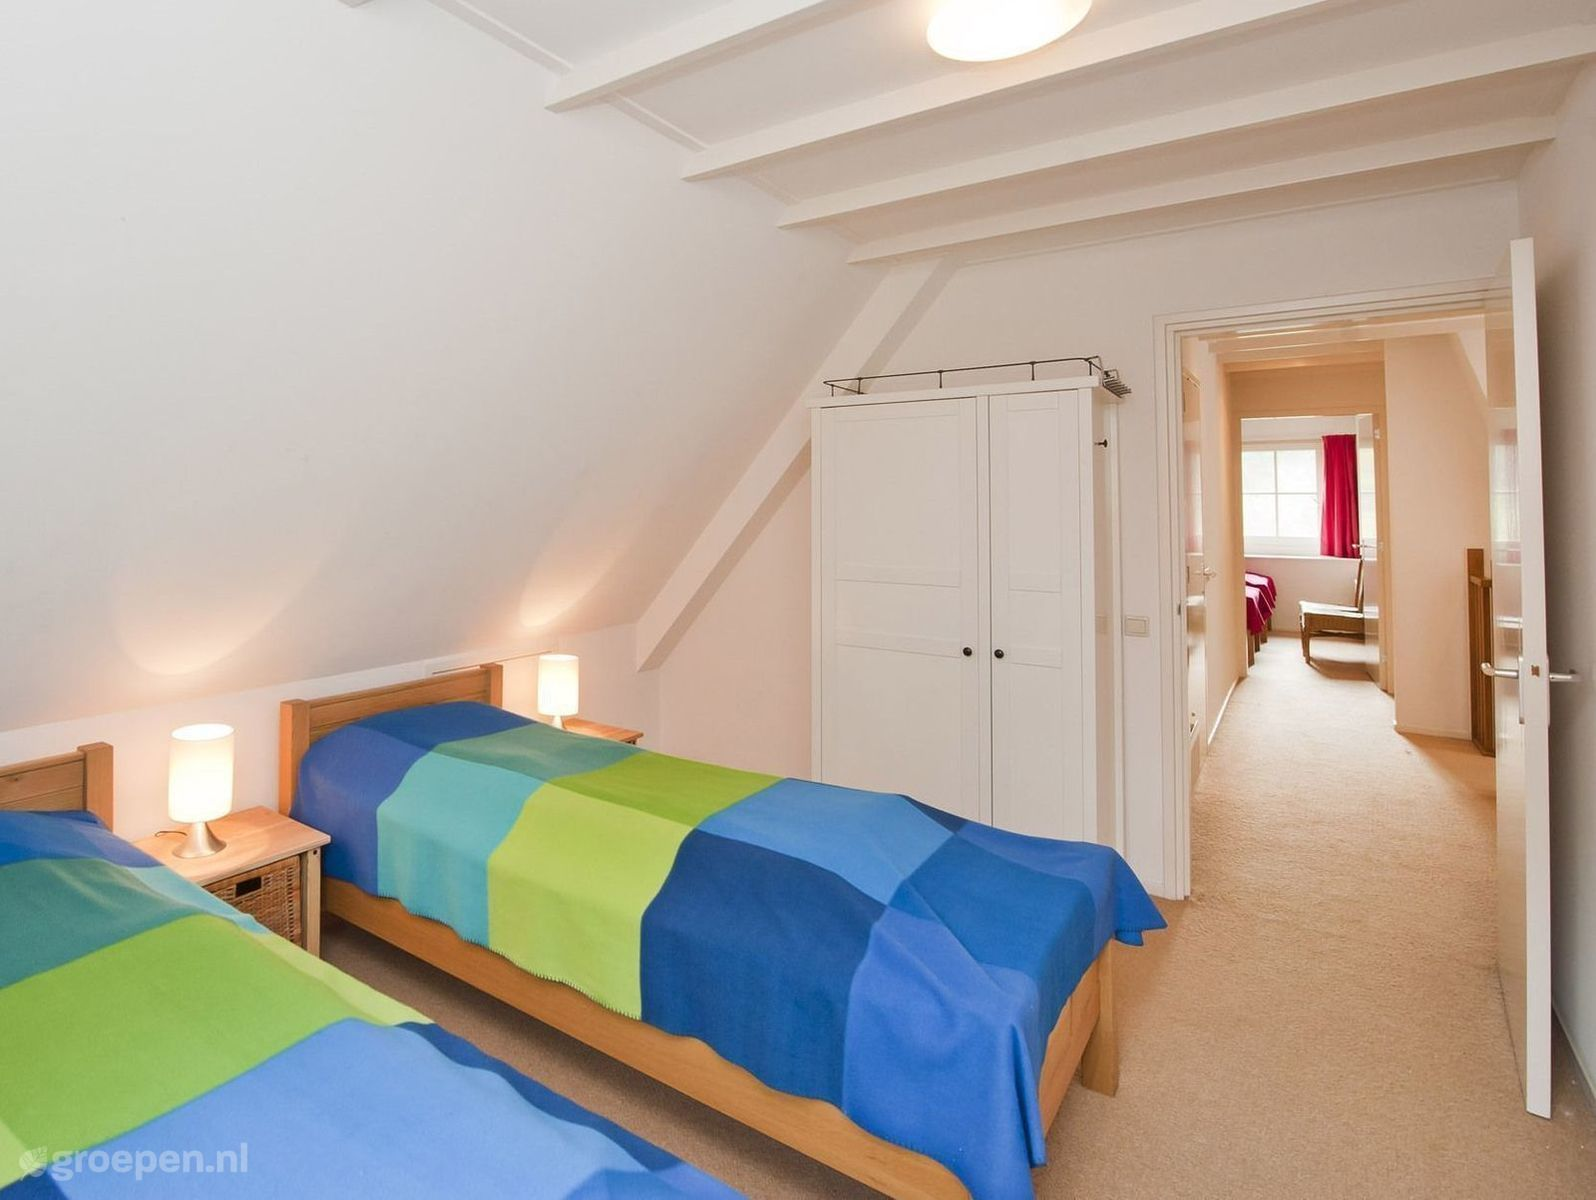 Group accommodation Tubbergen